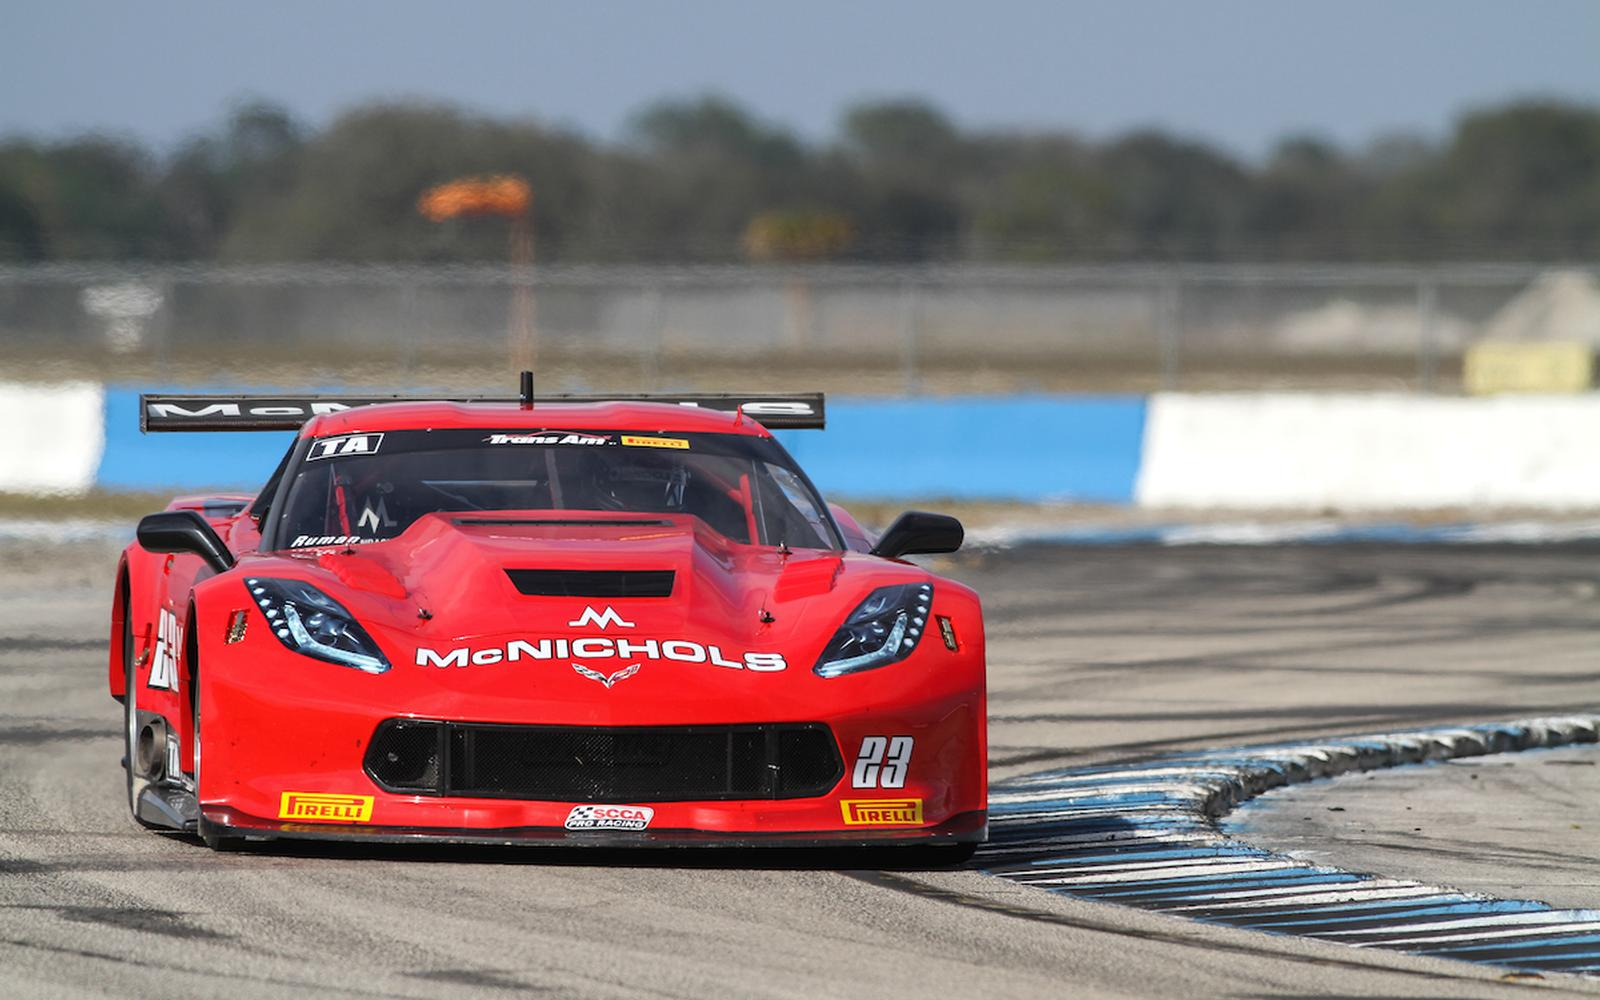 Top 5 Finish for Ruman at Trans Am Sebring Opener